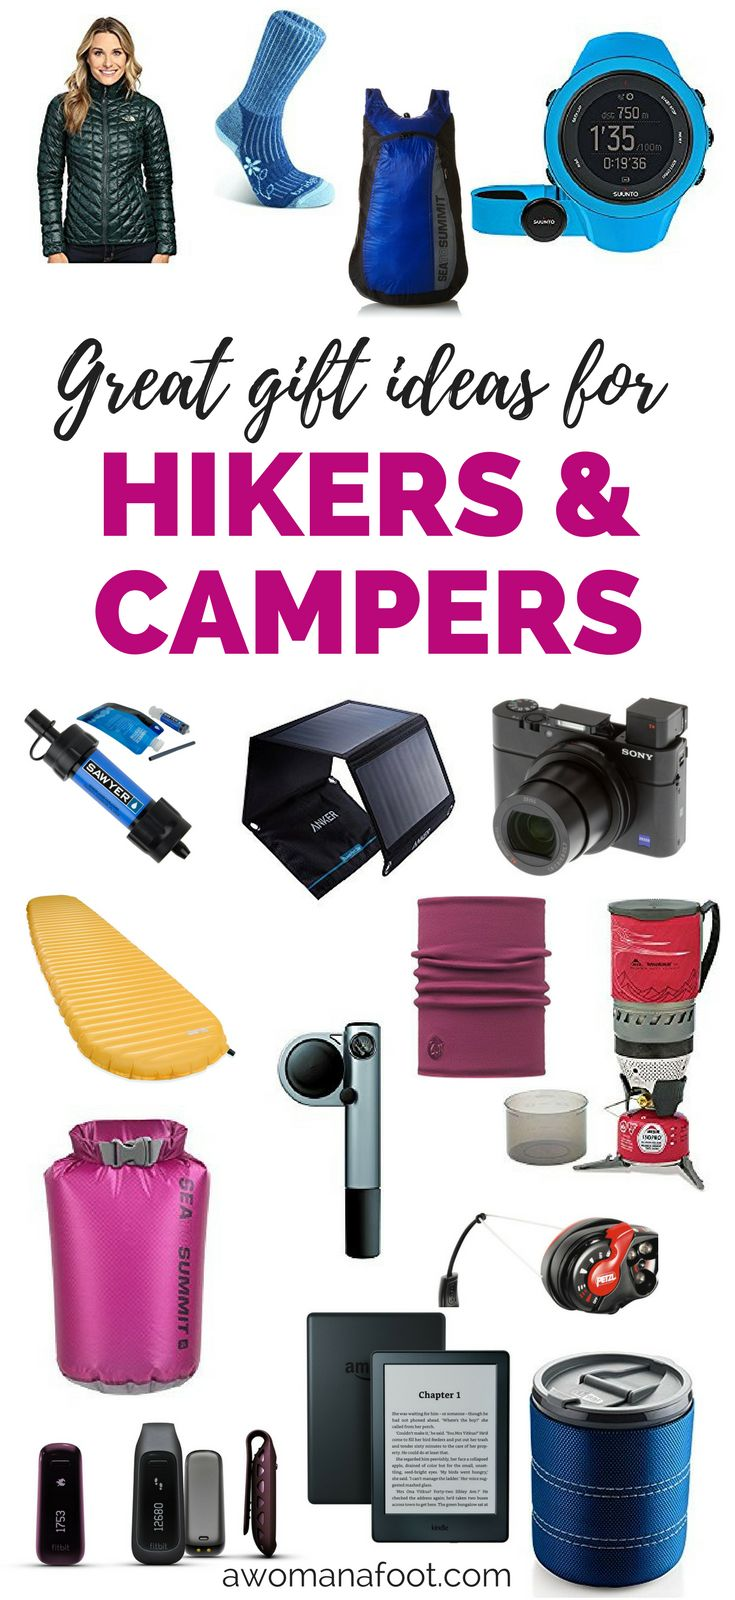 Outdoor travel gear coupons